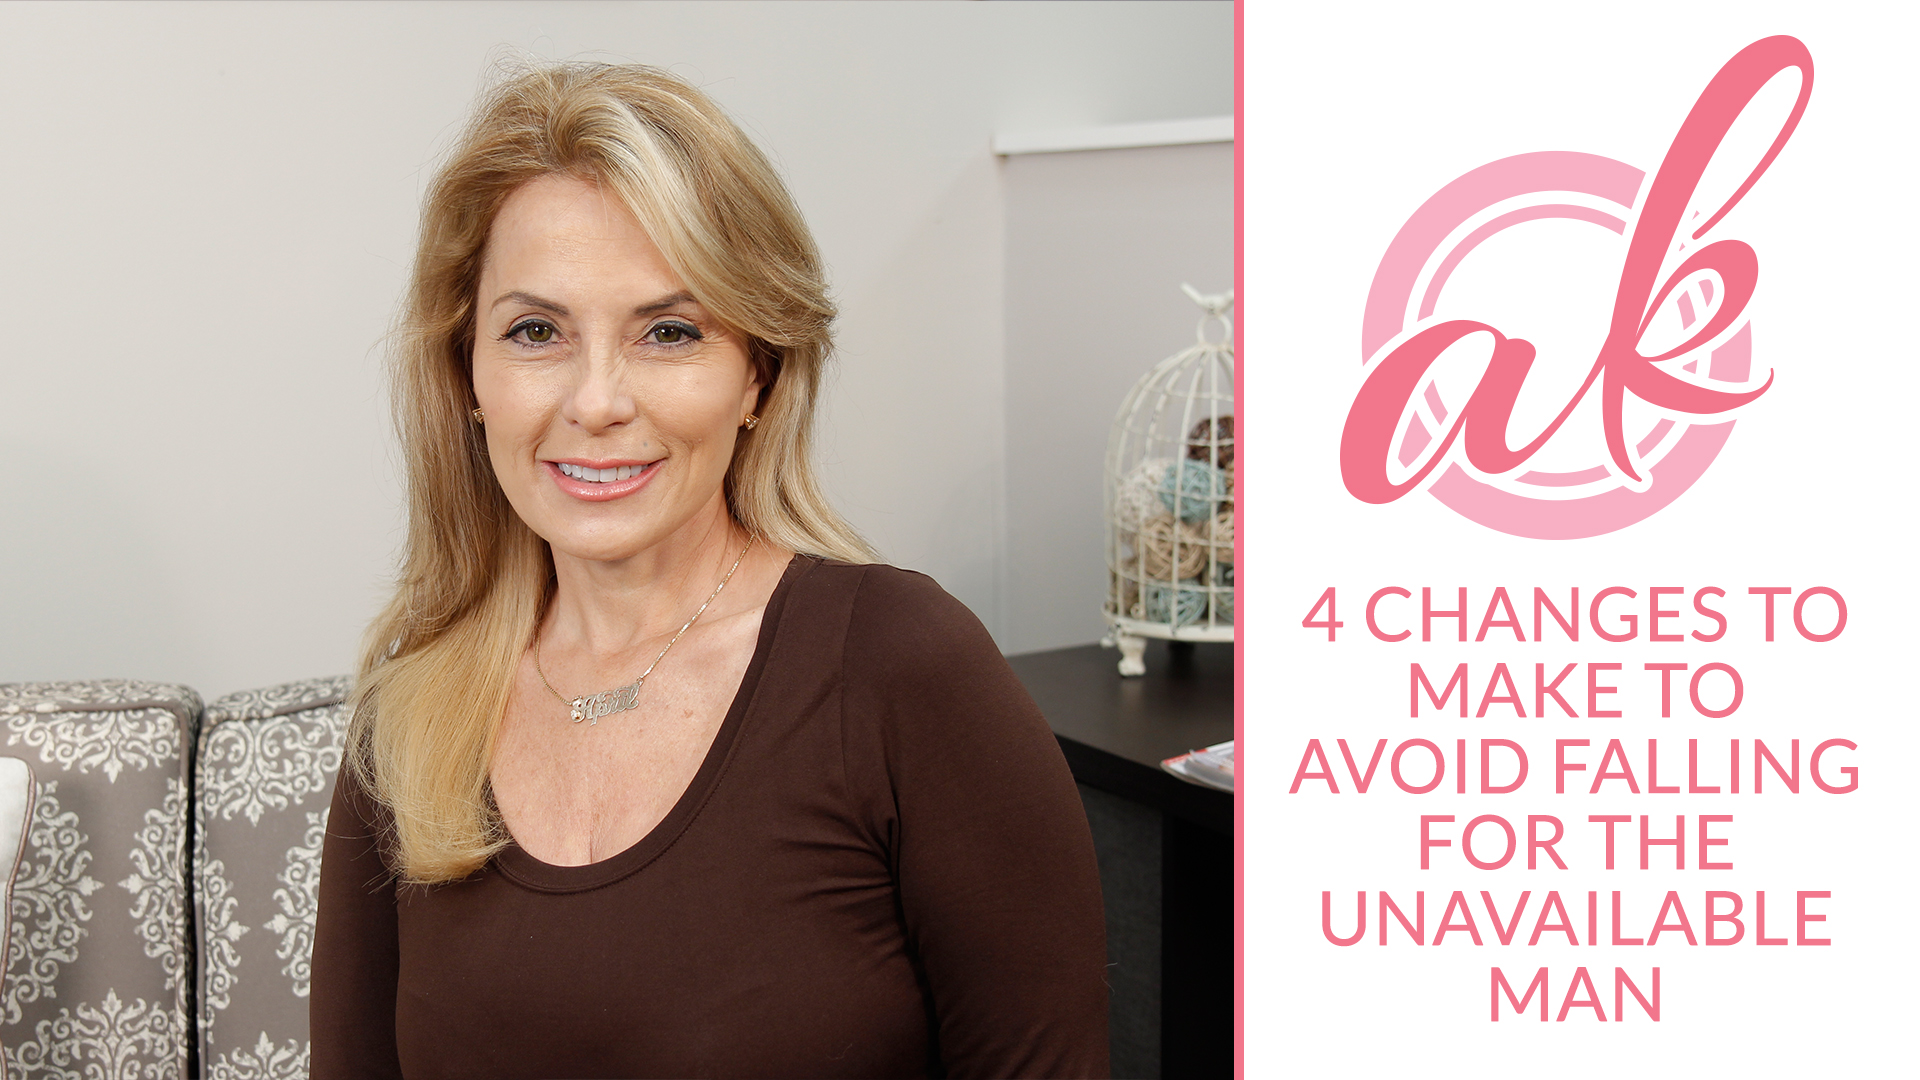 Episode 9:4 Changes to Make to Avoid Falling for the Unavailable Man